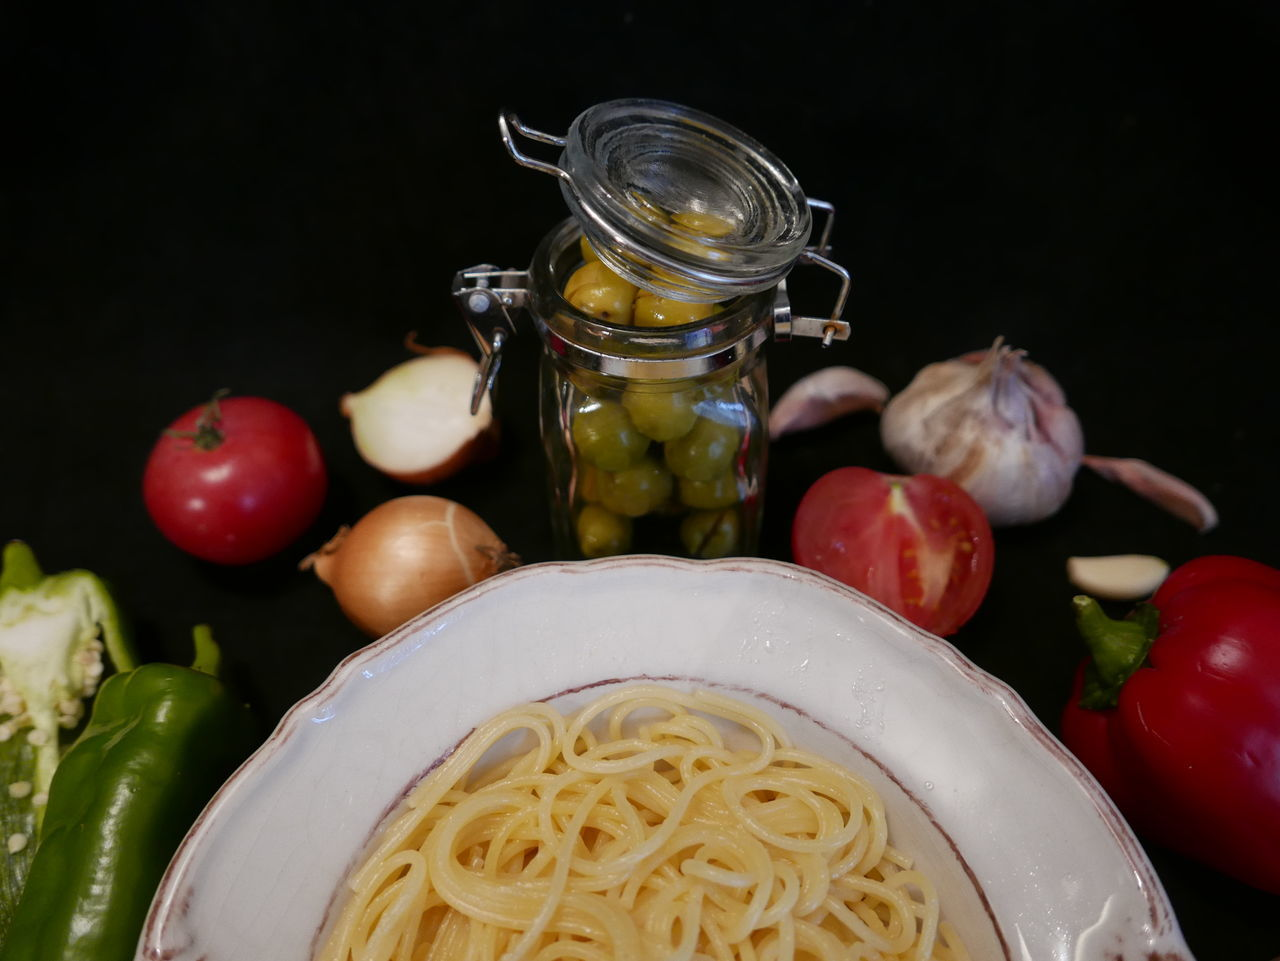 Close-Up Of Vegetables With Spaghetti Against Black Background